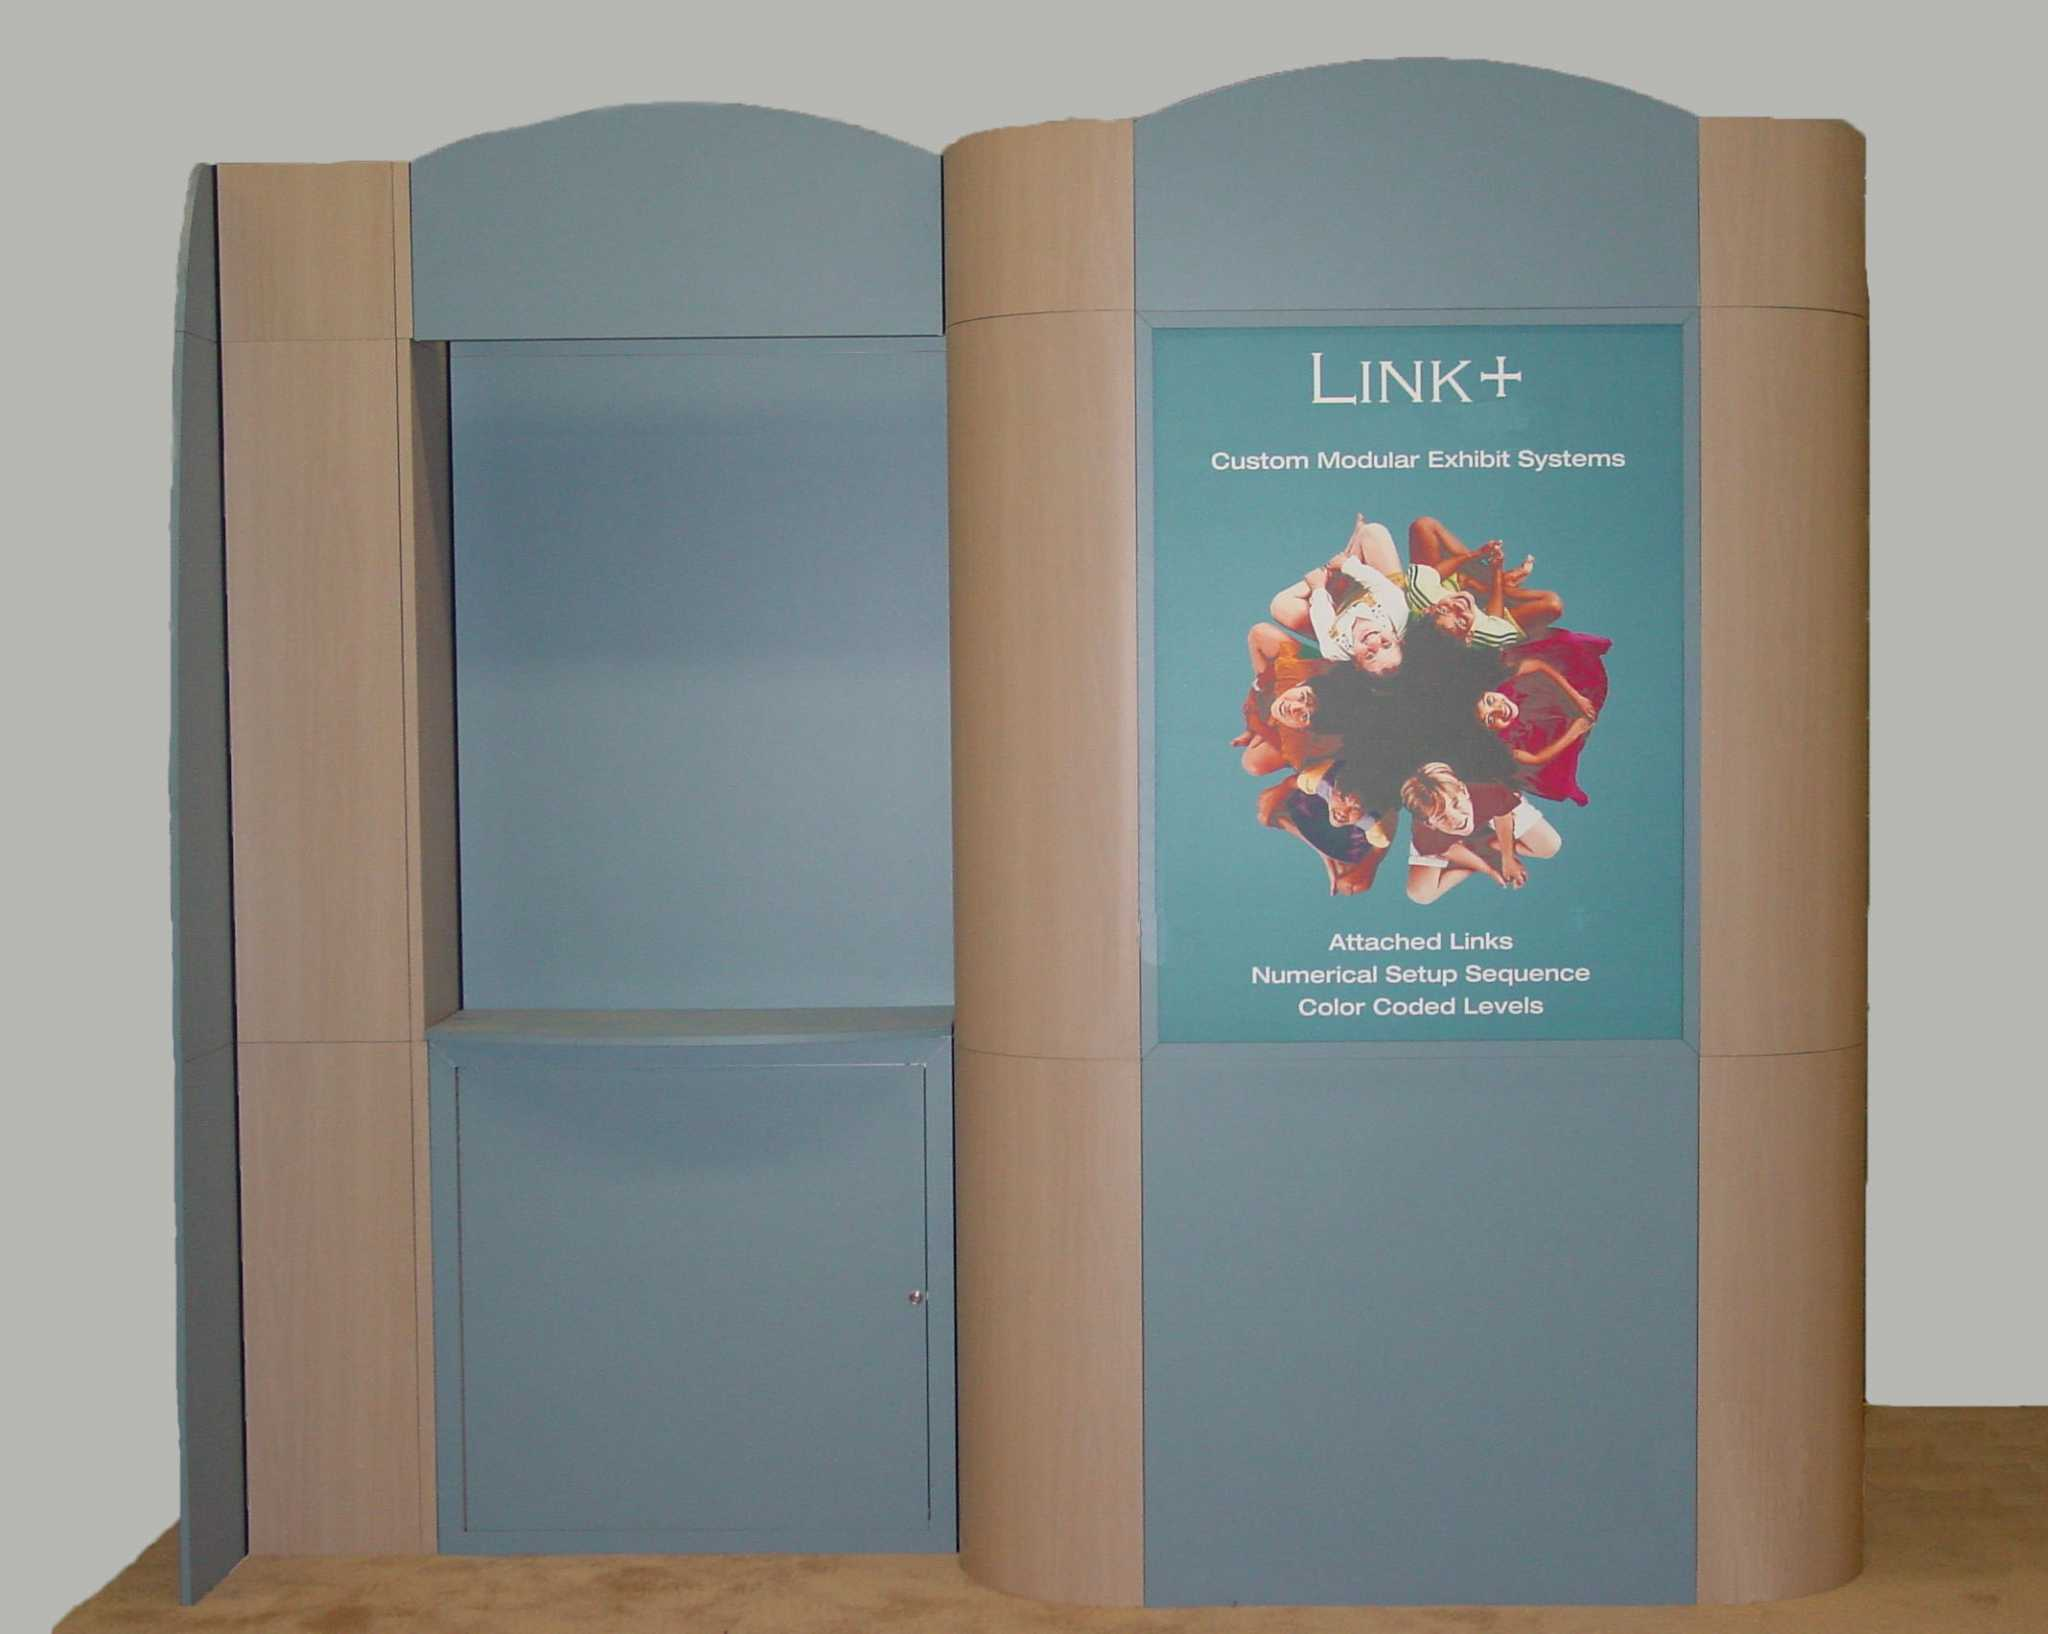 Pre-owned exhibits: 10x10 metal and wood custom modular trade show display